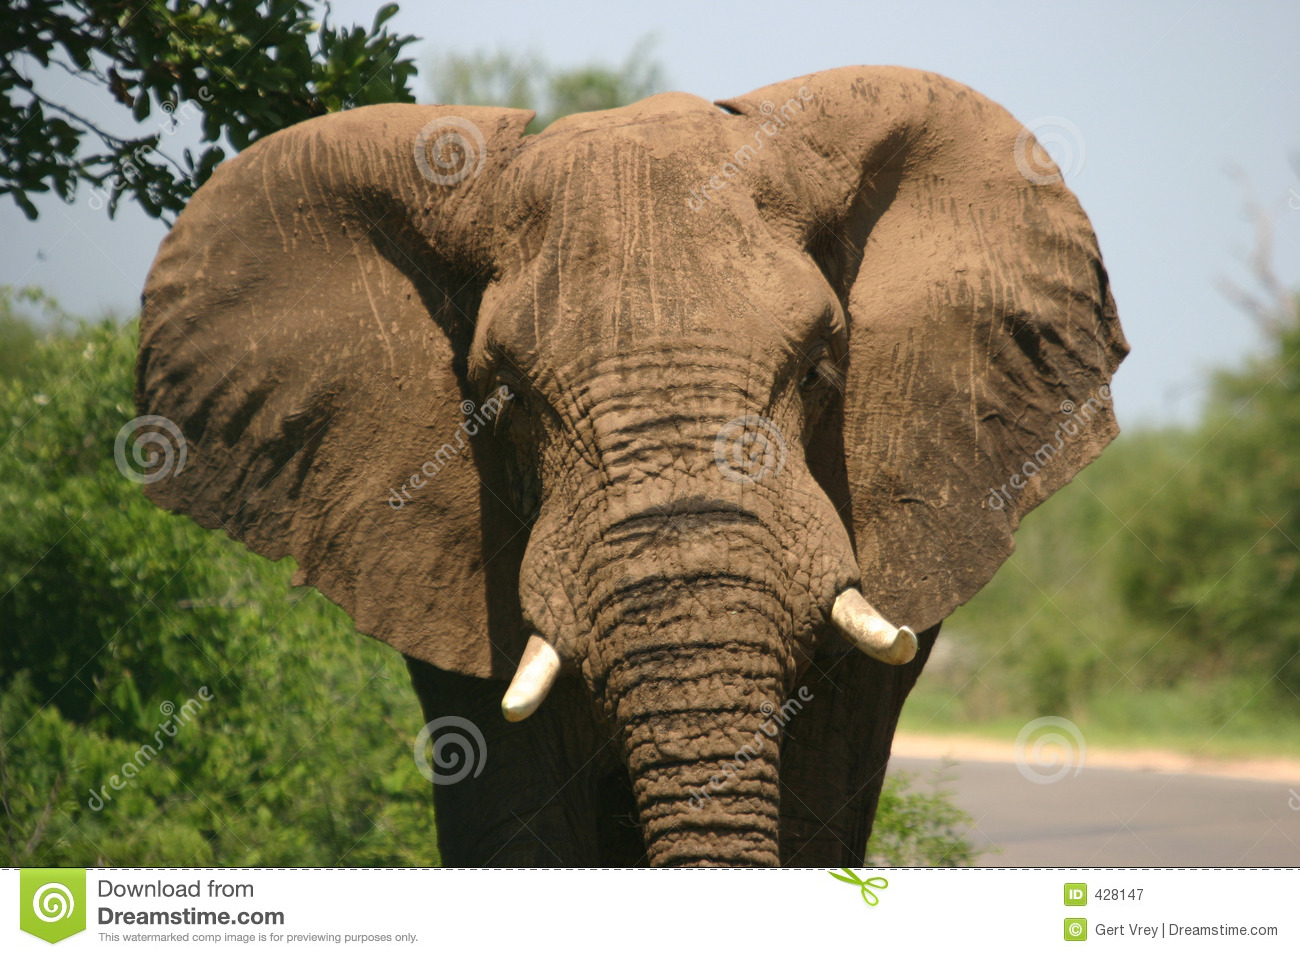 This elephant photo is not a Photo by Ramona Heiner